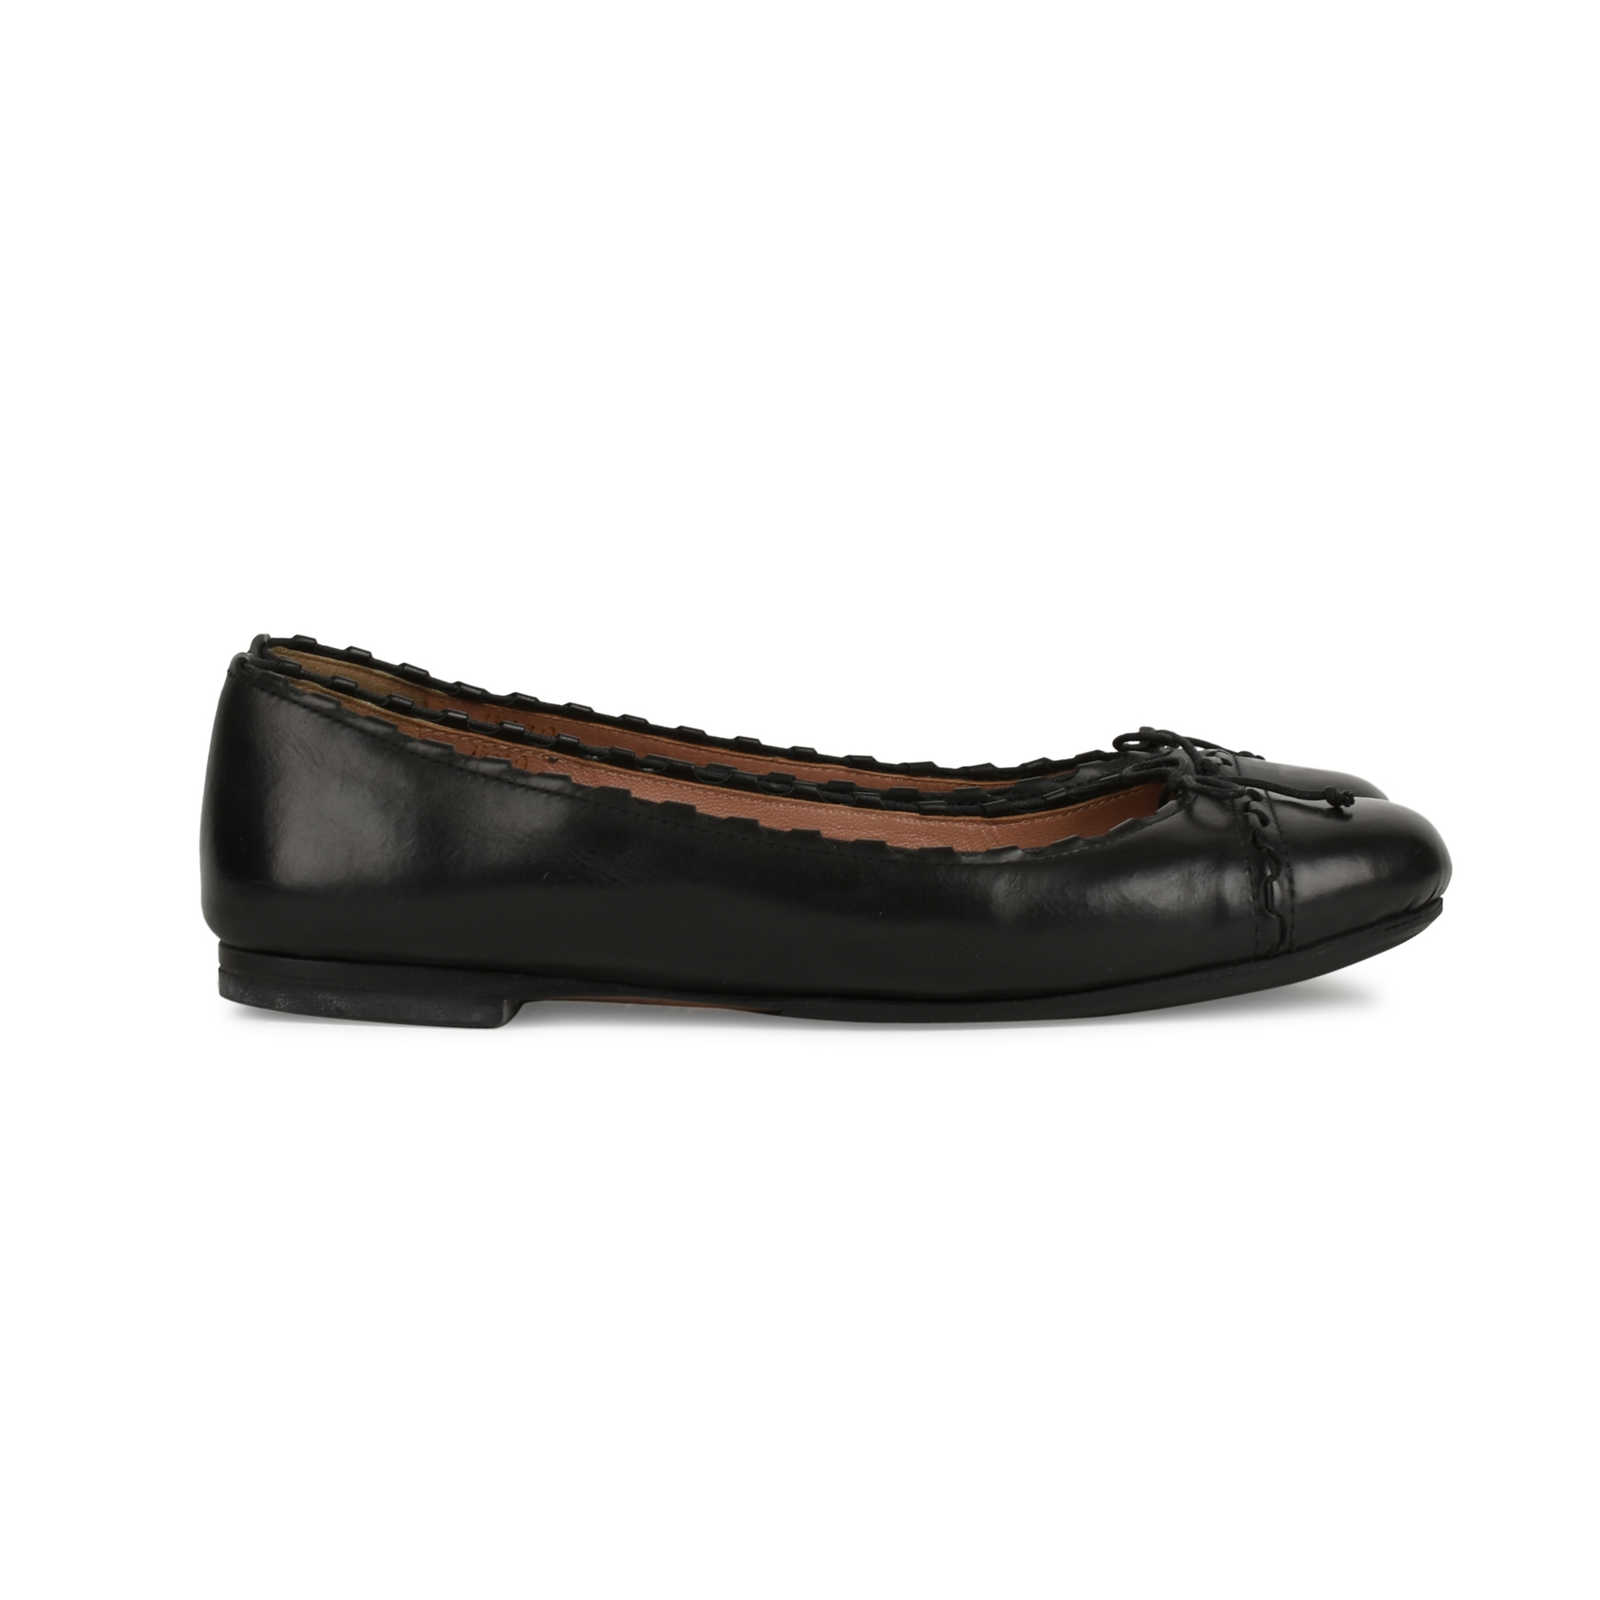 Alaïa Cap-Toe Patent Leather Flats